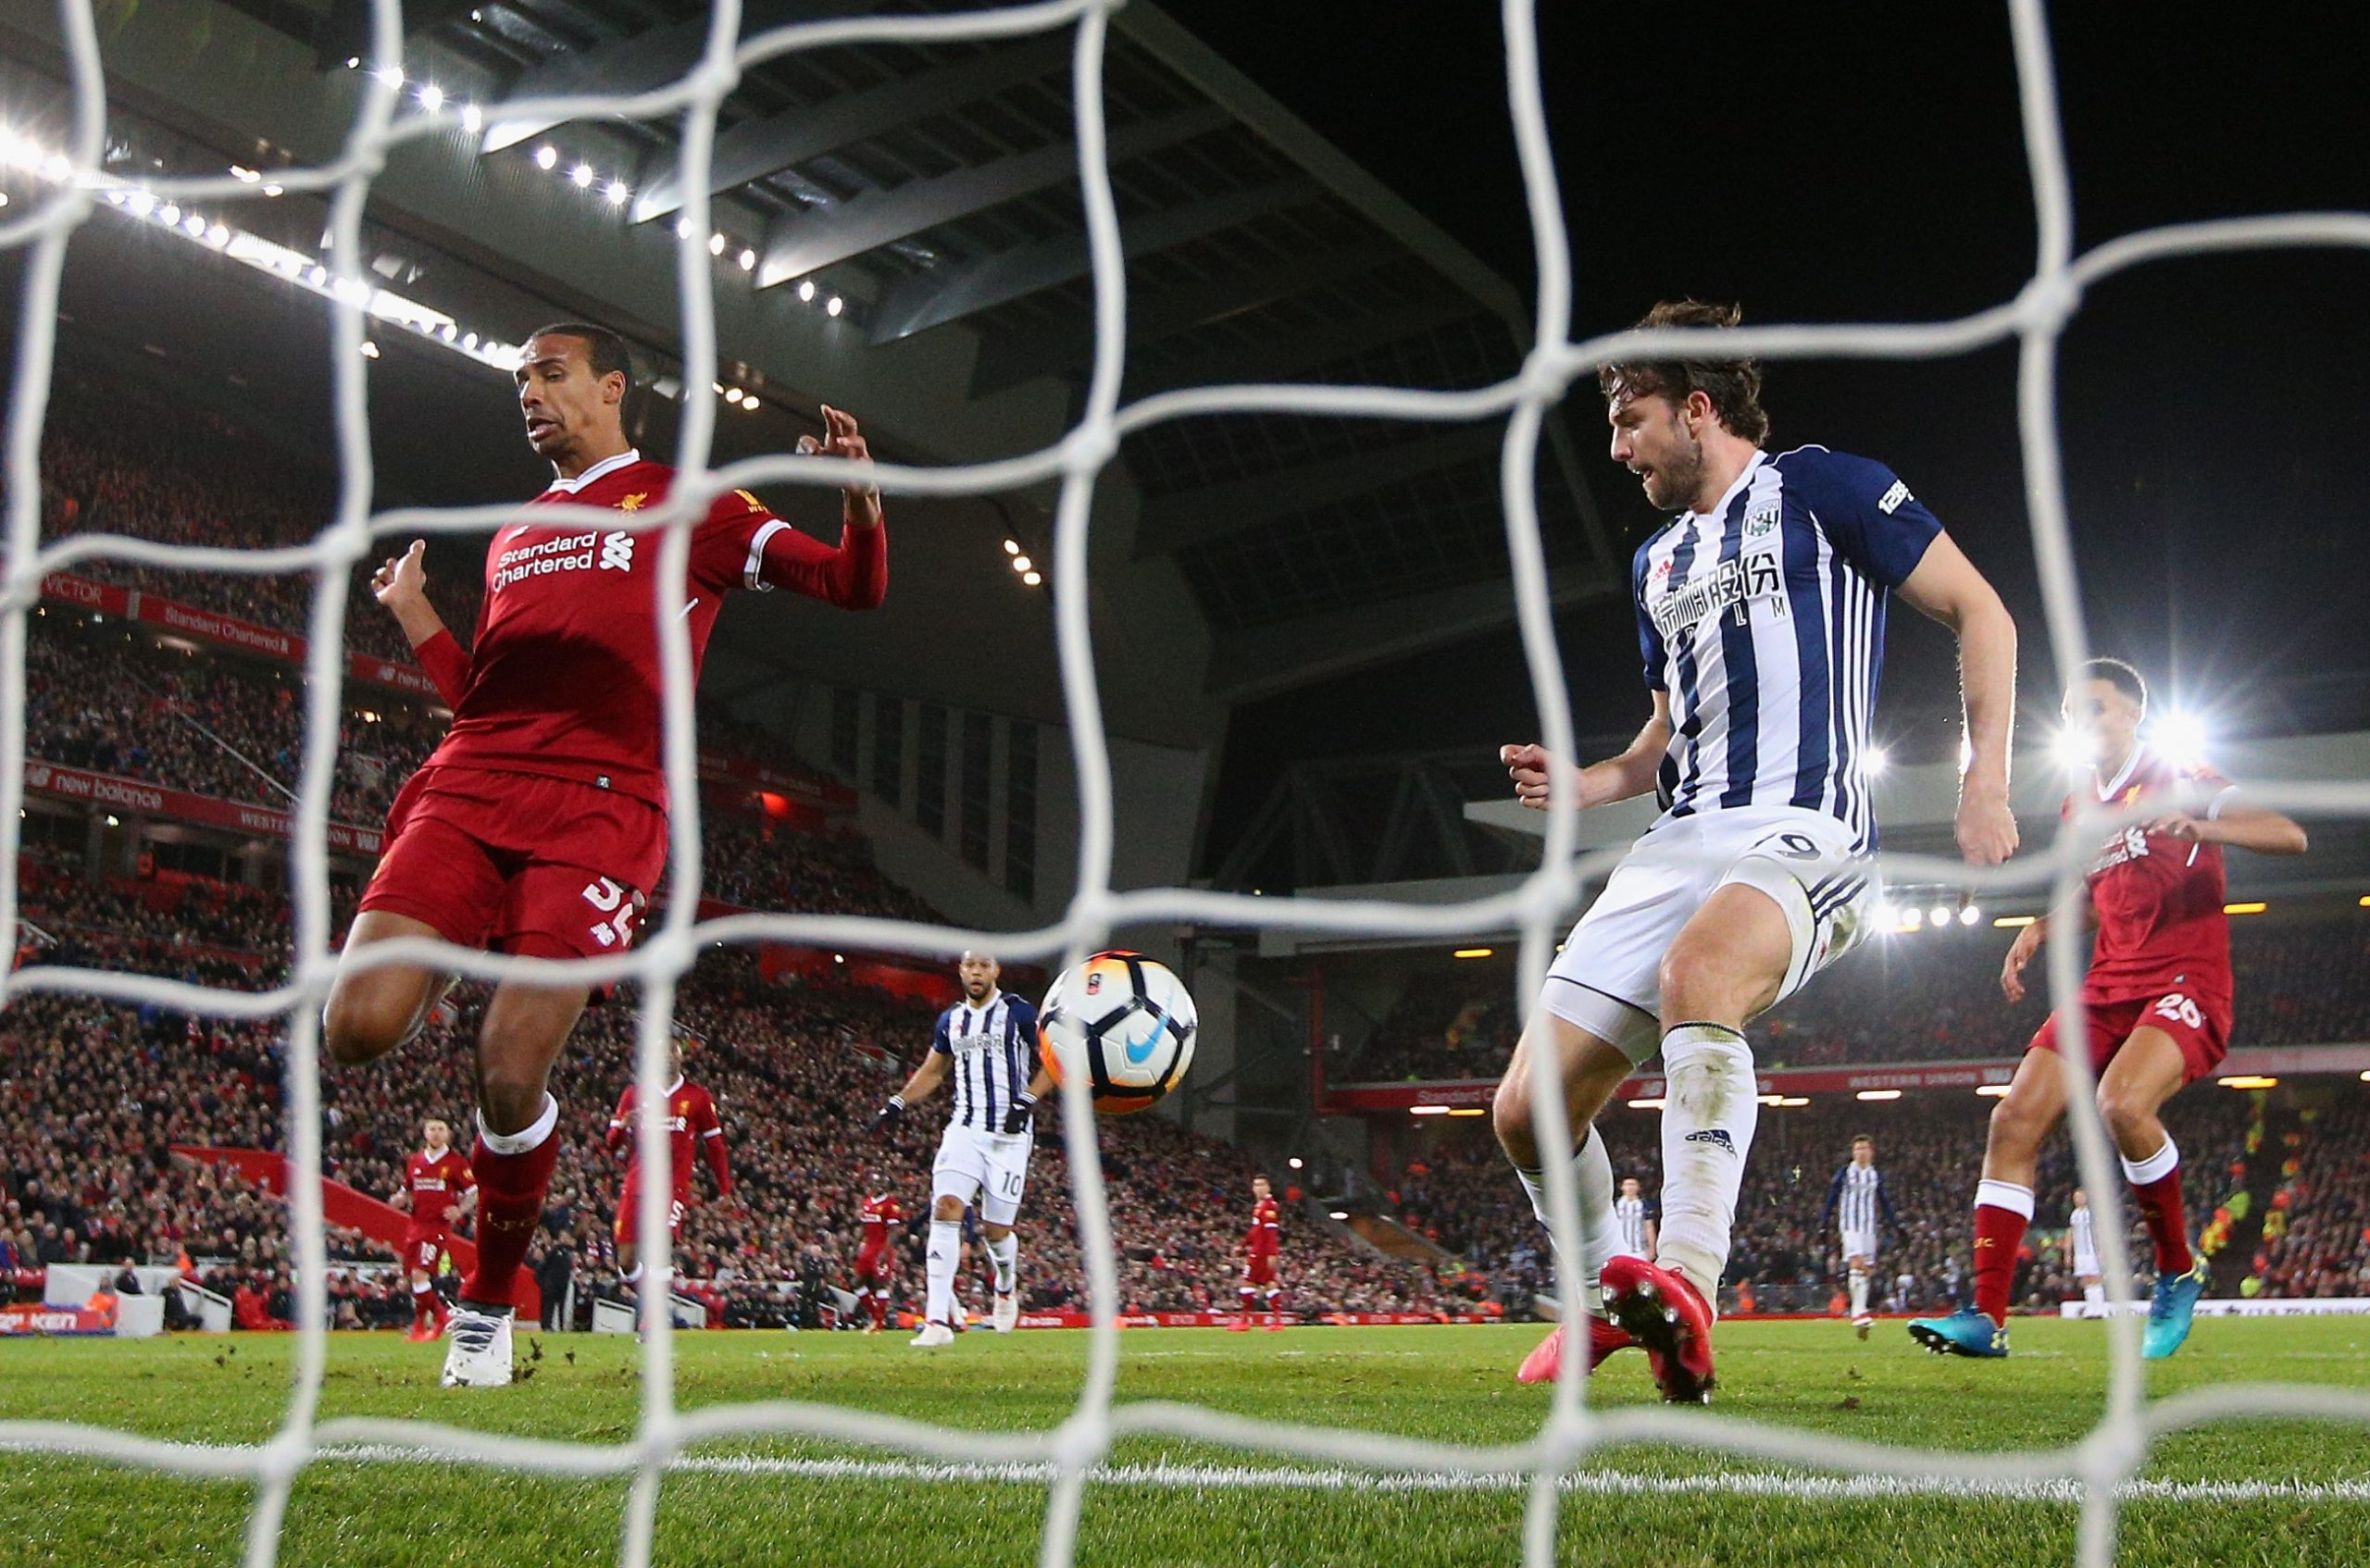 LIVERPOOL, ENGLAND - JANUARY 27: Jay Rodriguez of West Bromwich Albion watches on as Joel Matip of Liverpool scores an own goal during The Emirates FA Cup Fourth Round match between Liverpool and West Bromwich Albion at Anfield on January 27, 2018 in Liverpool, England. (Photo by Alex Livesey/Getty Images)